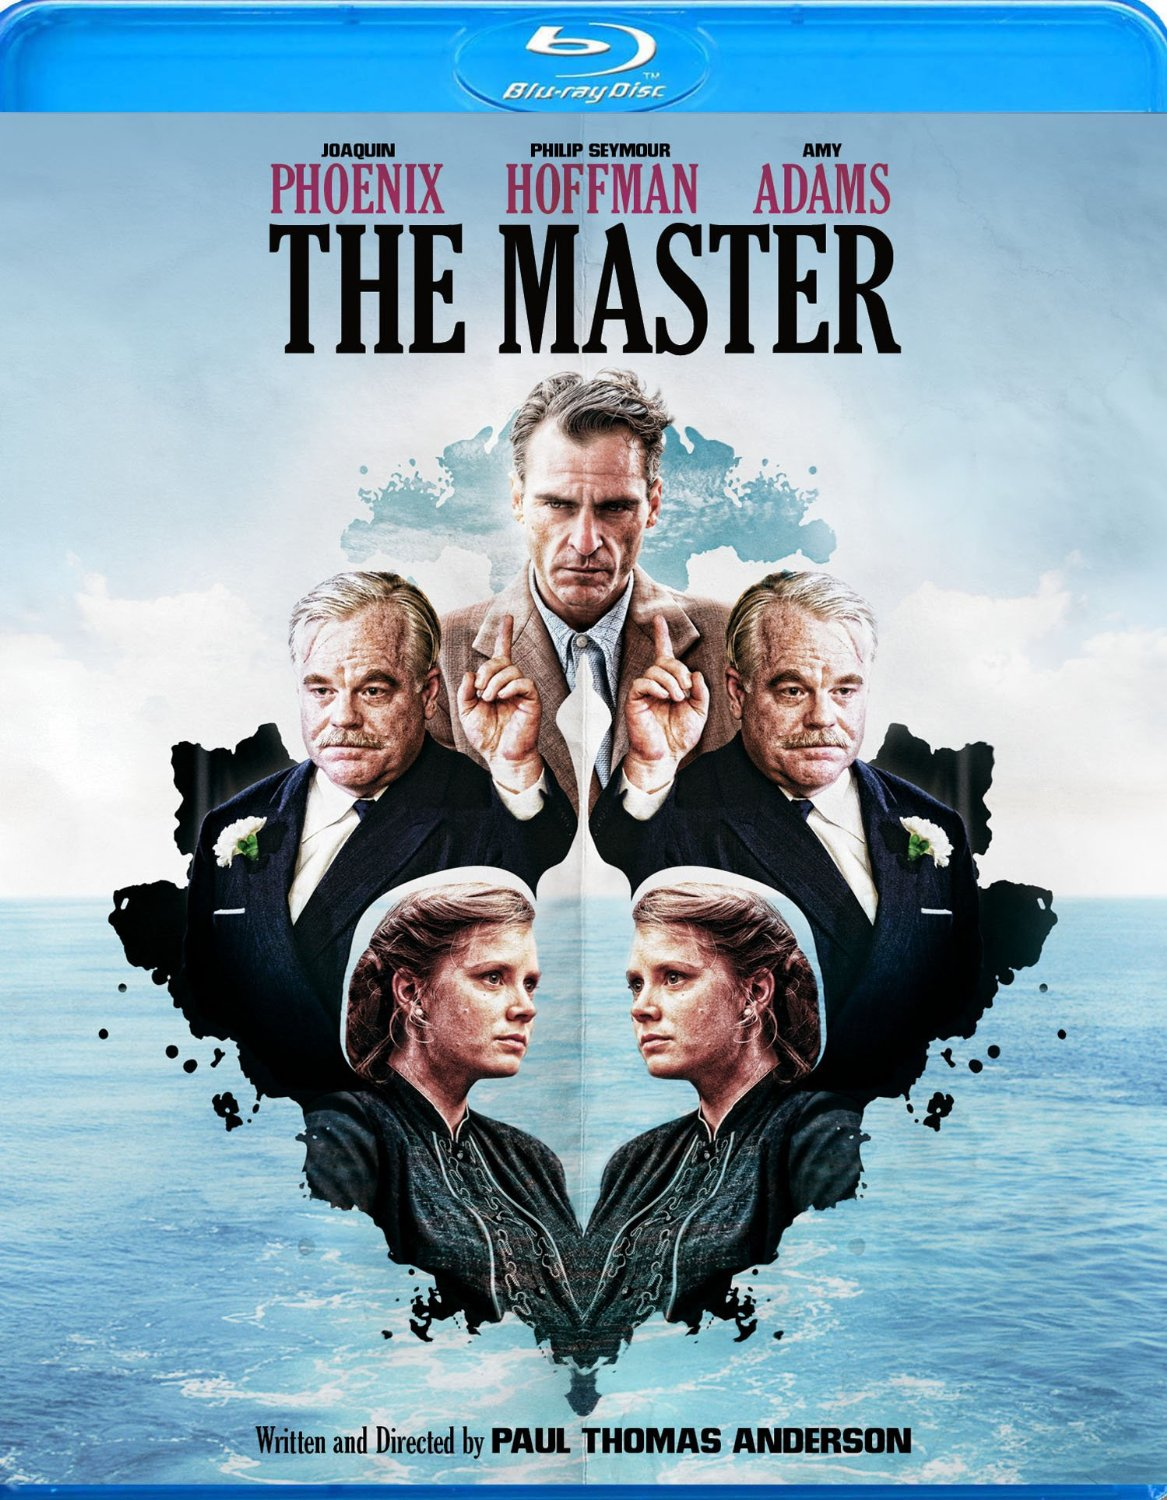 The Master was released on Blu-ray and DVD on February 26, 2013